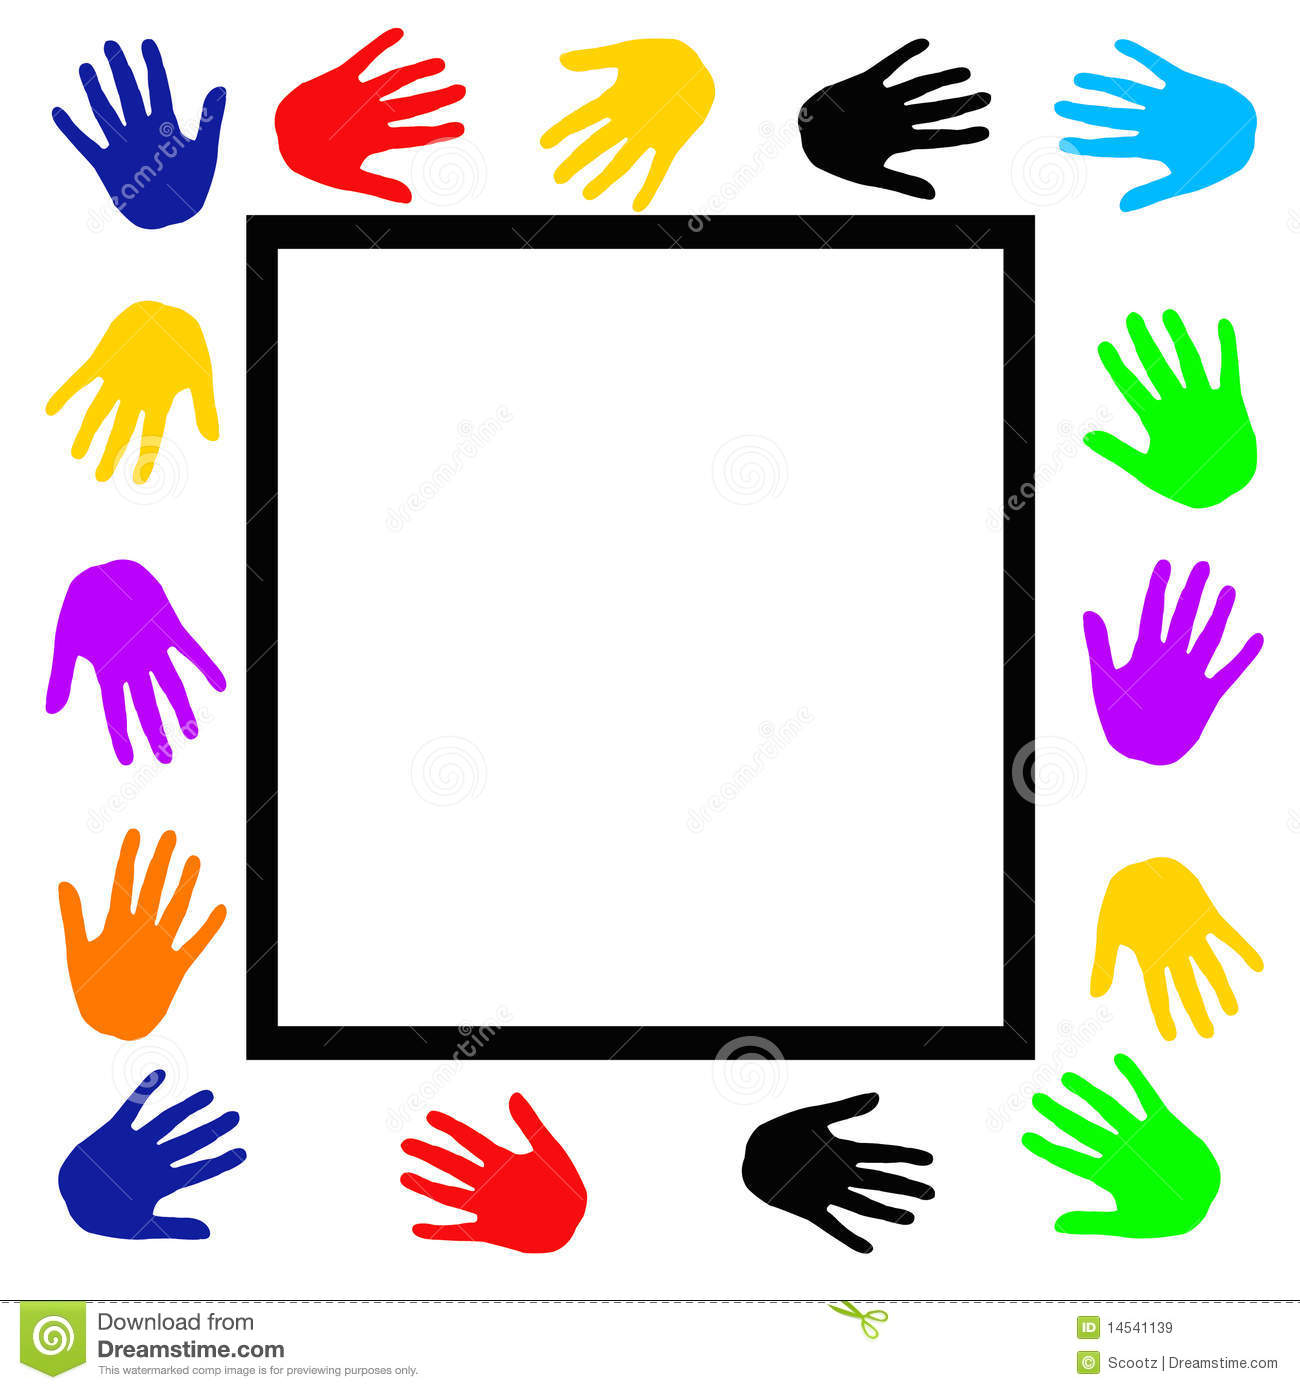 Helping hands . Border clipart hand